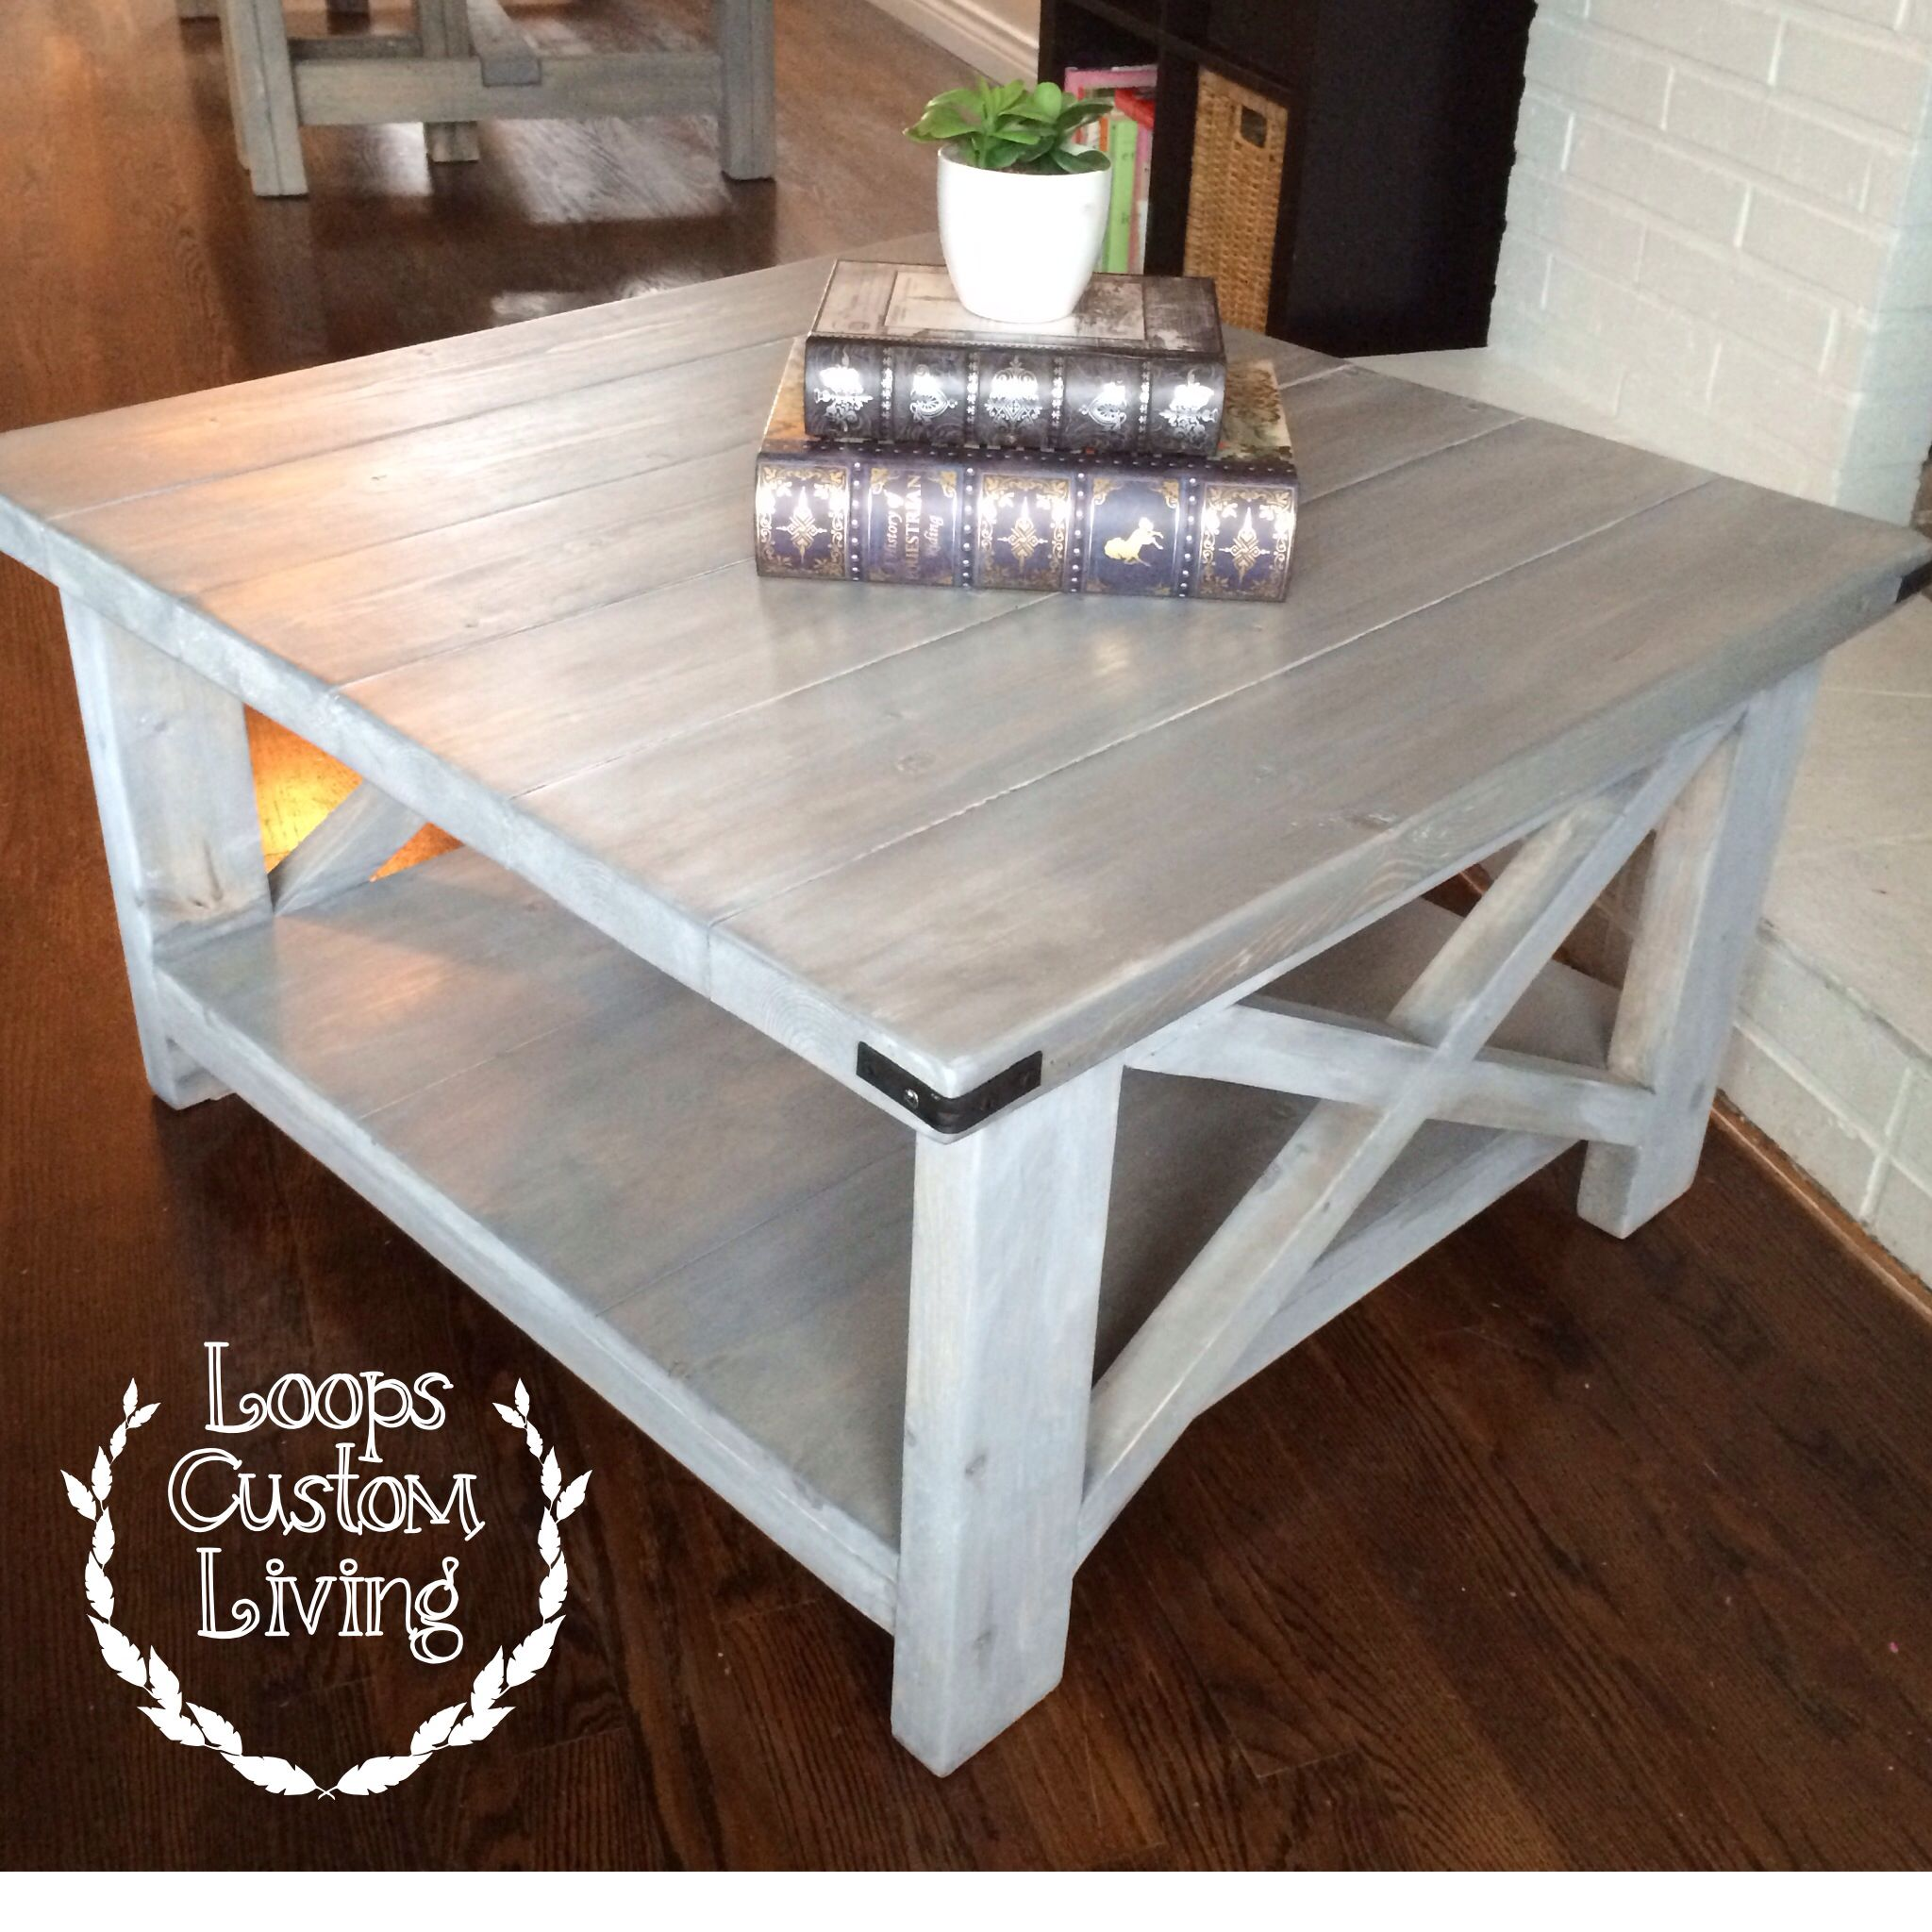 White Rustic Coffee Table Image Result For Square